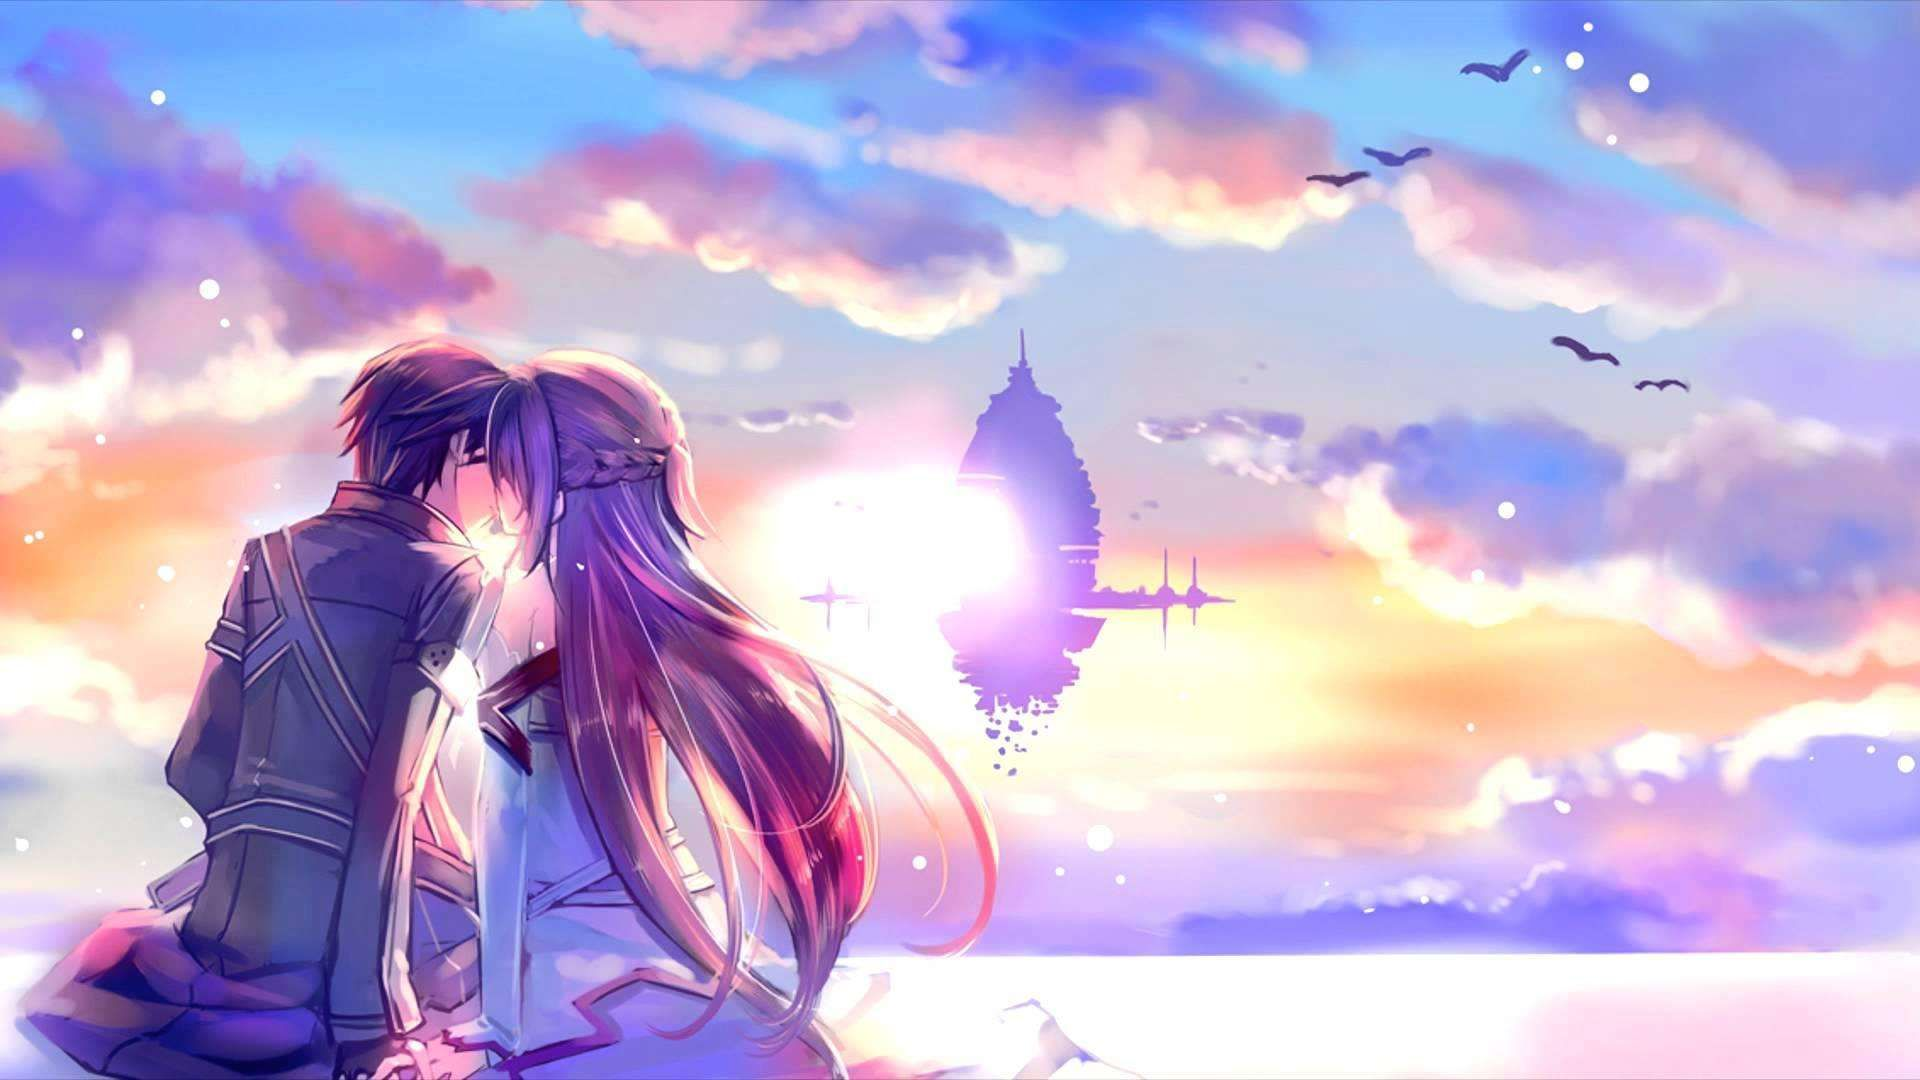 New Anime Love Wallpaper Hd 1080p At Hdwallwide Com High Definition